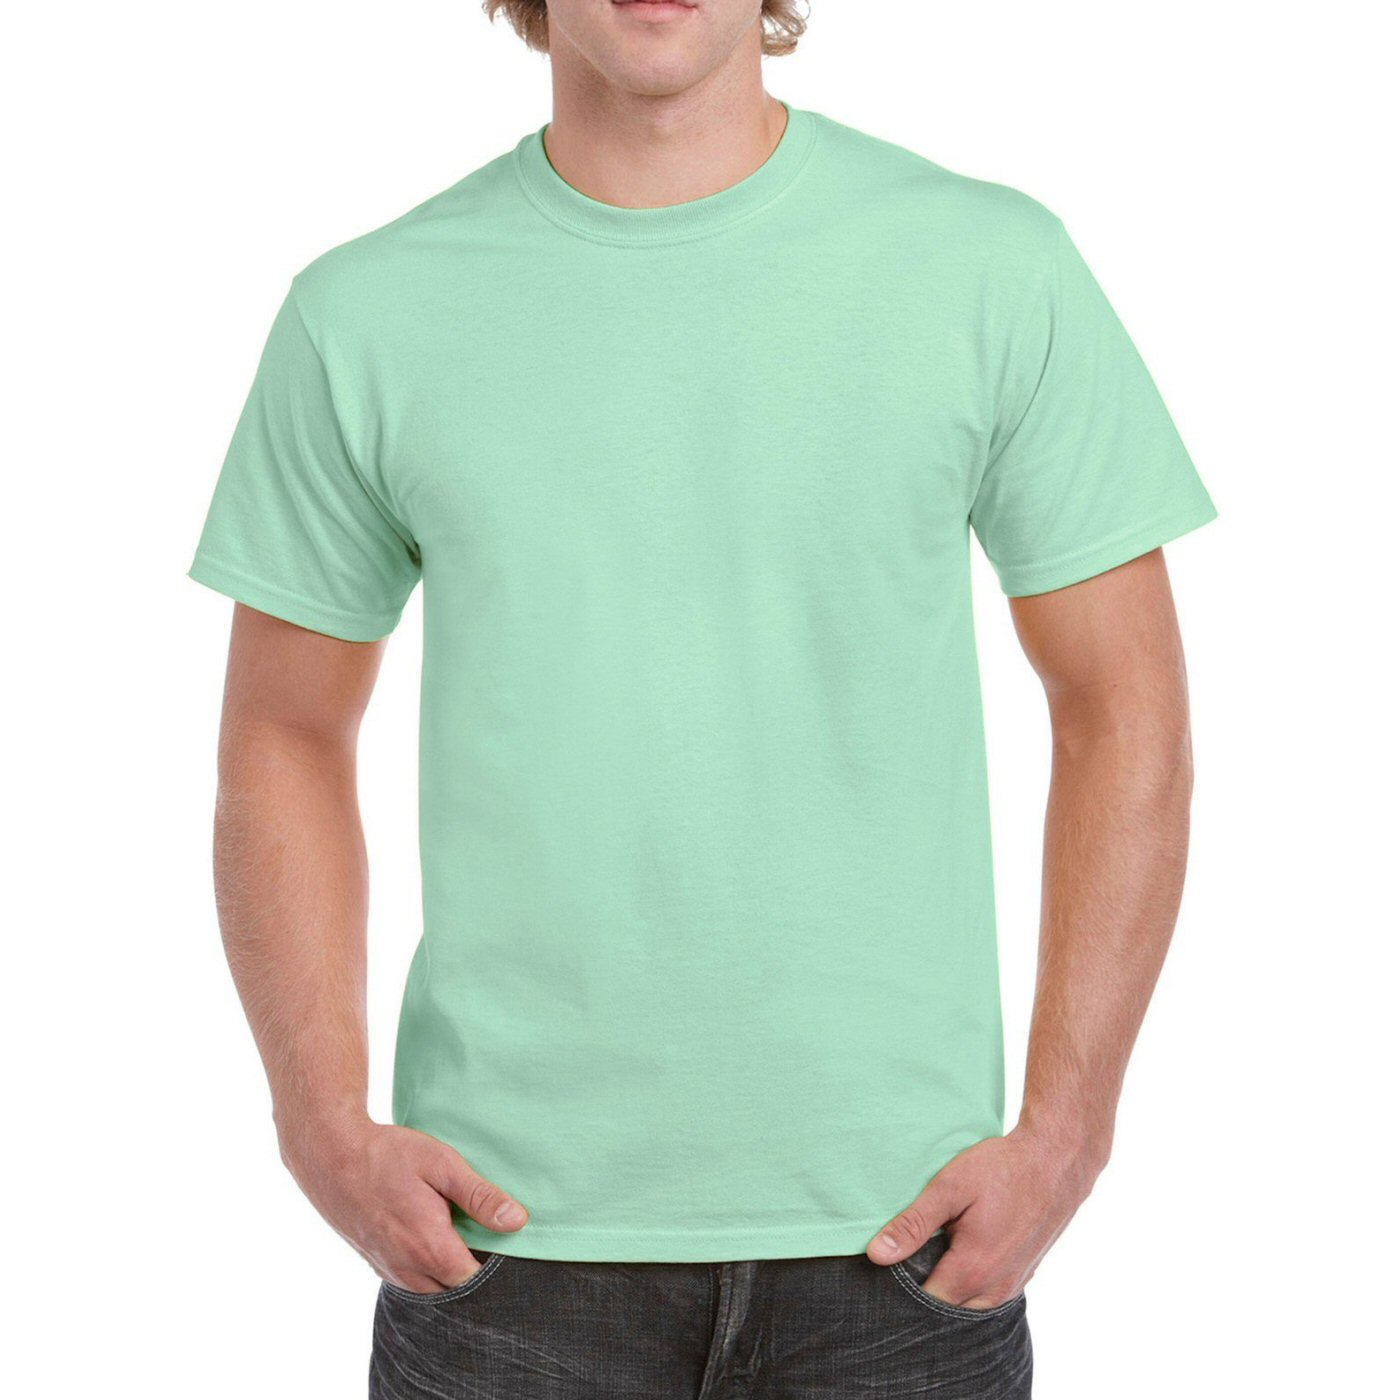 Mint Plain Round Neck T-shirt image